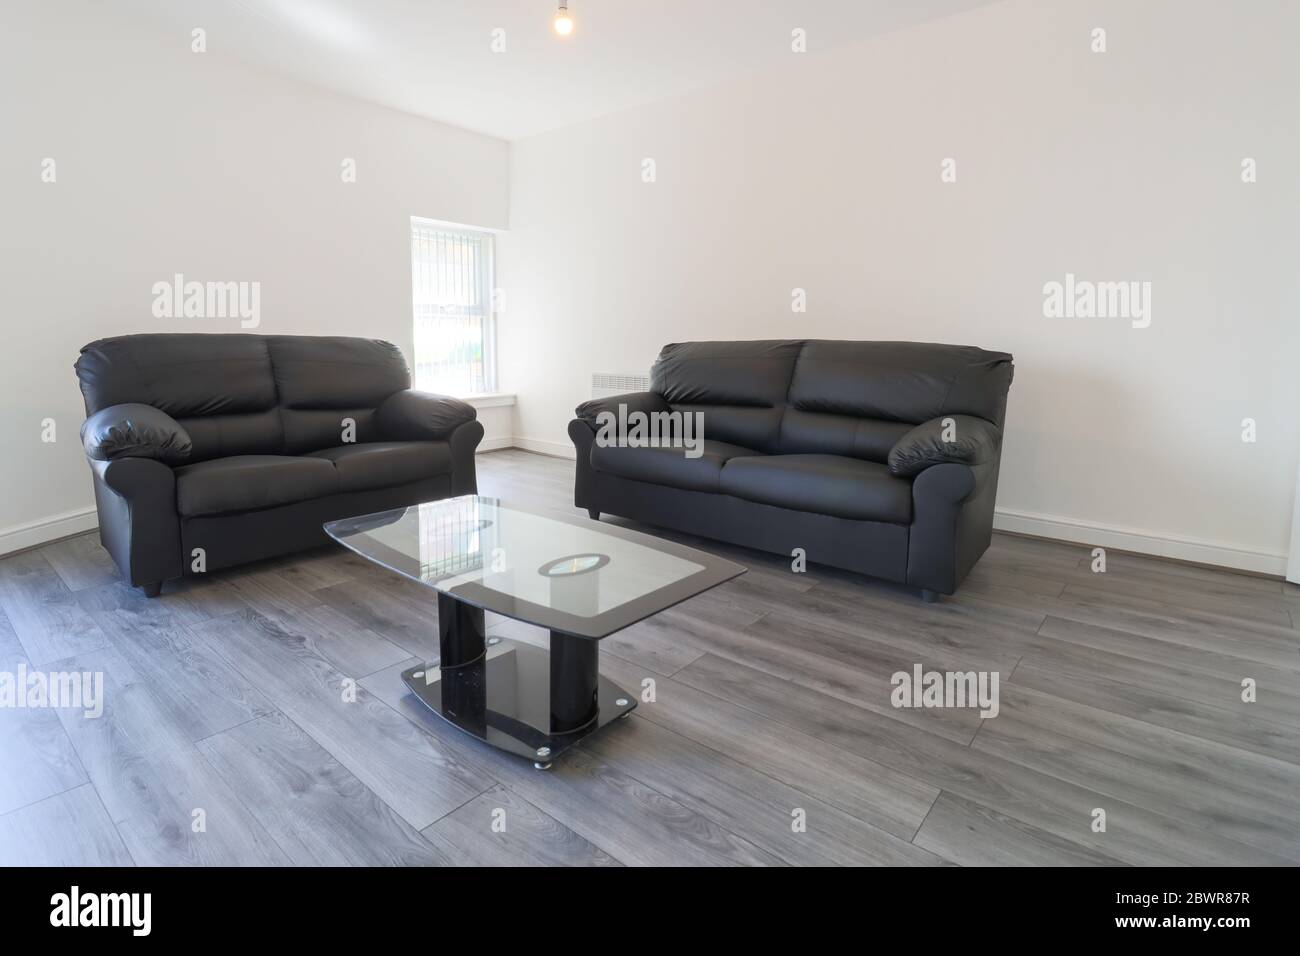 A Modern British Living Room With Two Black Leather Sofas On A Grey Wooden Floor With White Walls And Modern Blinds Up At The Window Stock Photo Alamy